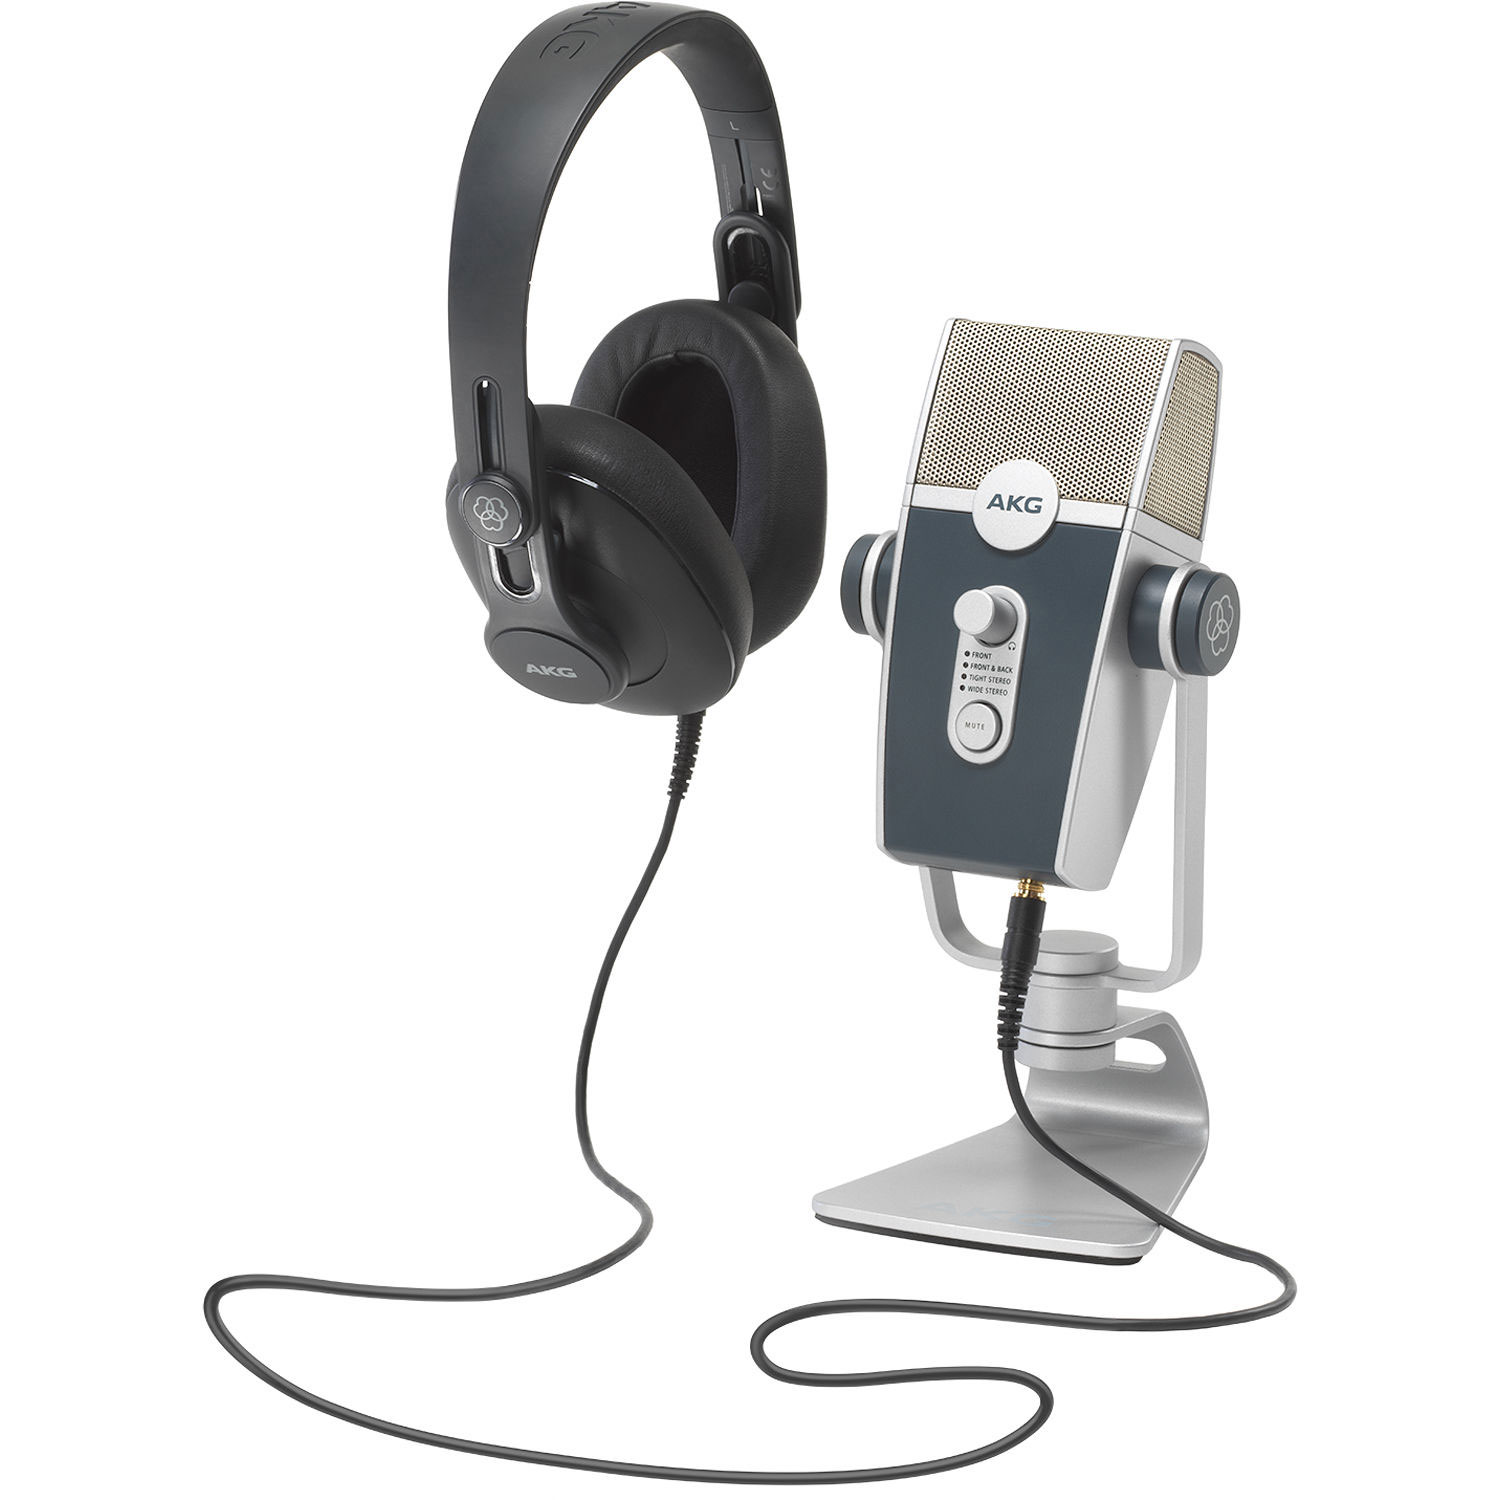 AKG Podcaster Essentials Lyra USB Microphone and AKG K371 Headphones